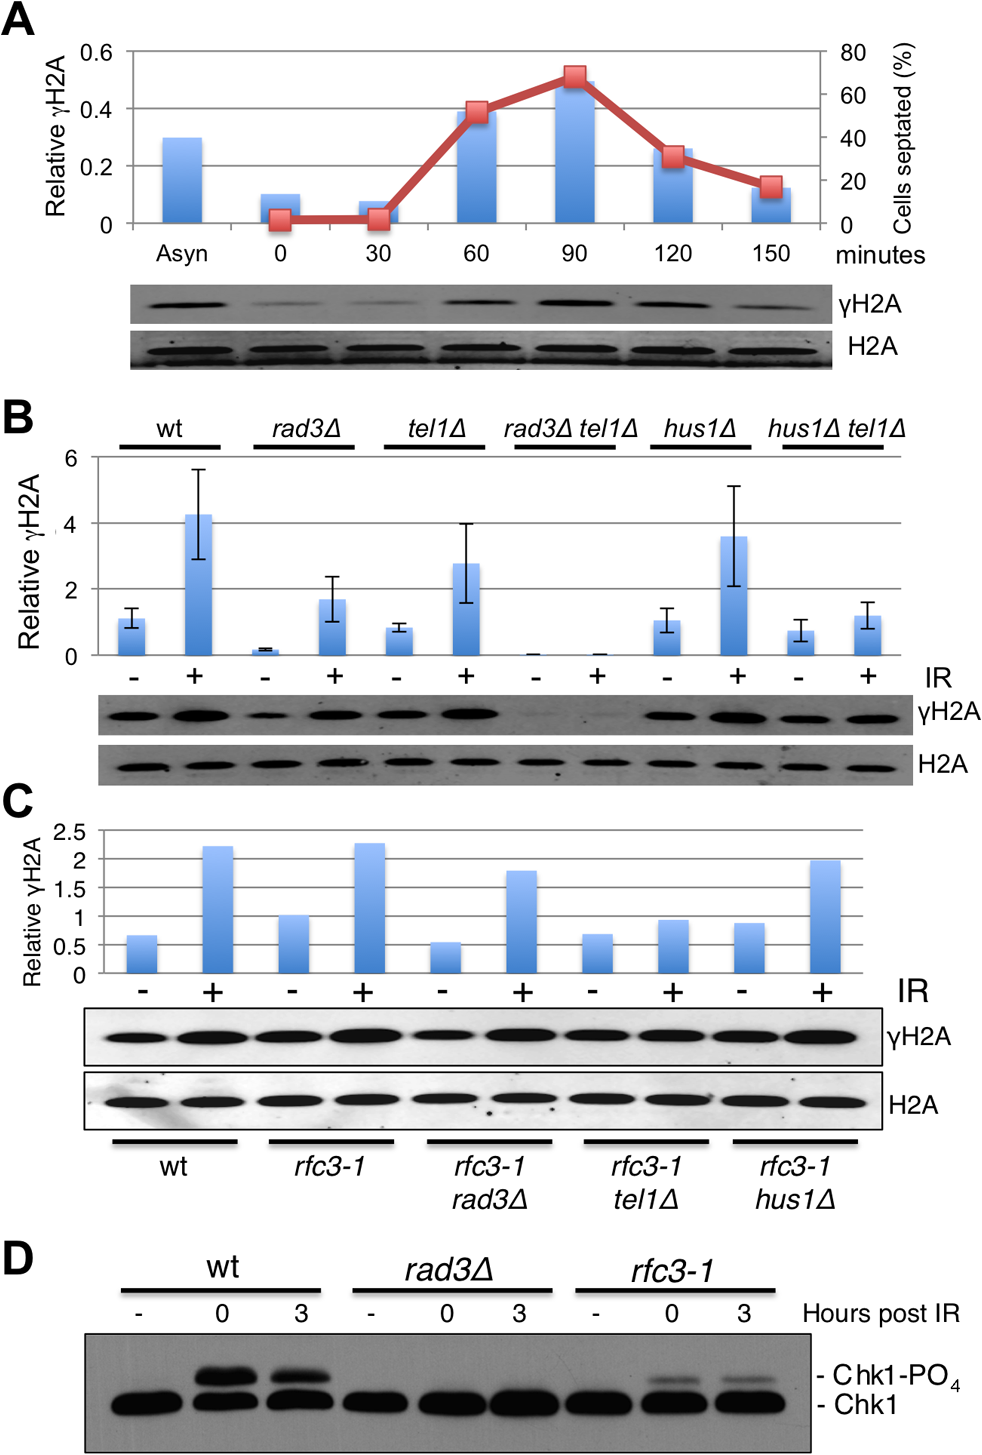 Hus1-independent phosphorylation of histone H2A by Rad3/ATR in <i>rfc3-1</i> cells.